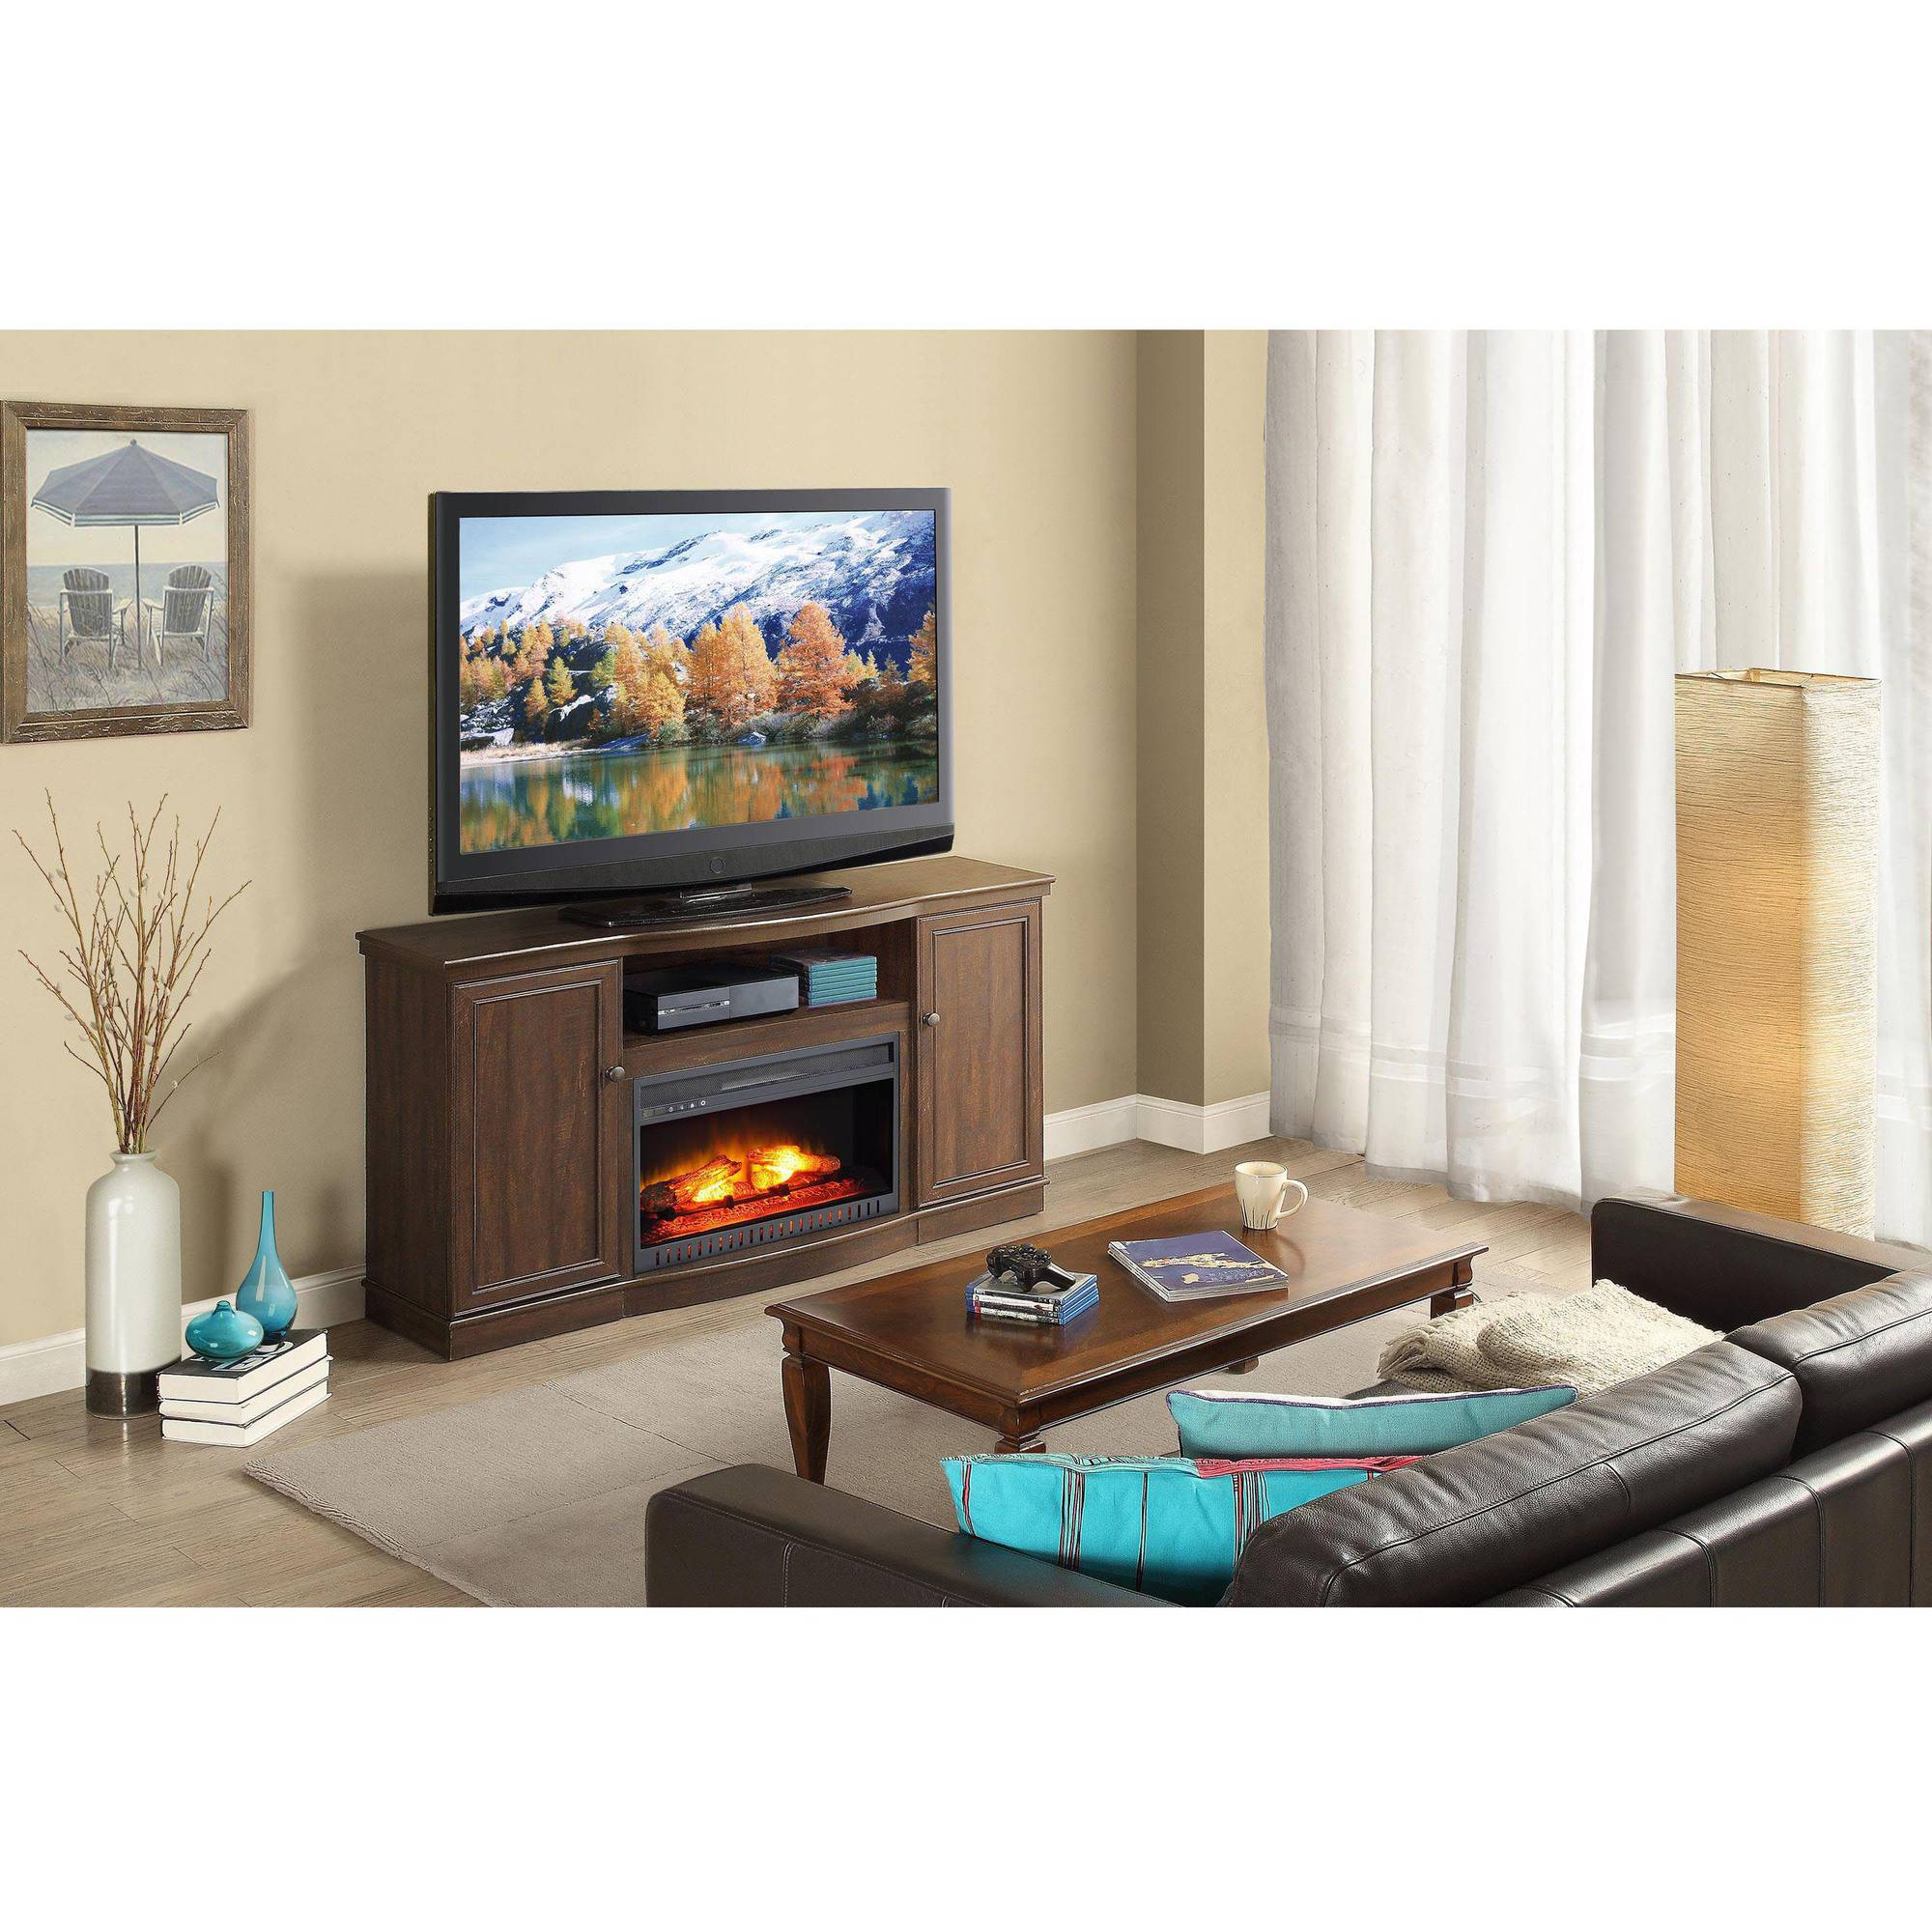 Wood Spaces Target Stand Black Fireplace Tall Wall Inch Mahogany Intended For Marvin Rustic Natural 60 Inch Tv Stands (Photo 23 of 30)